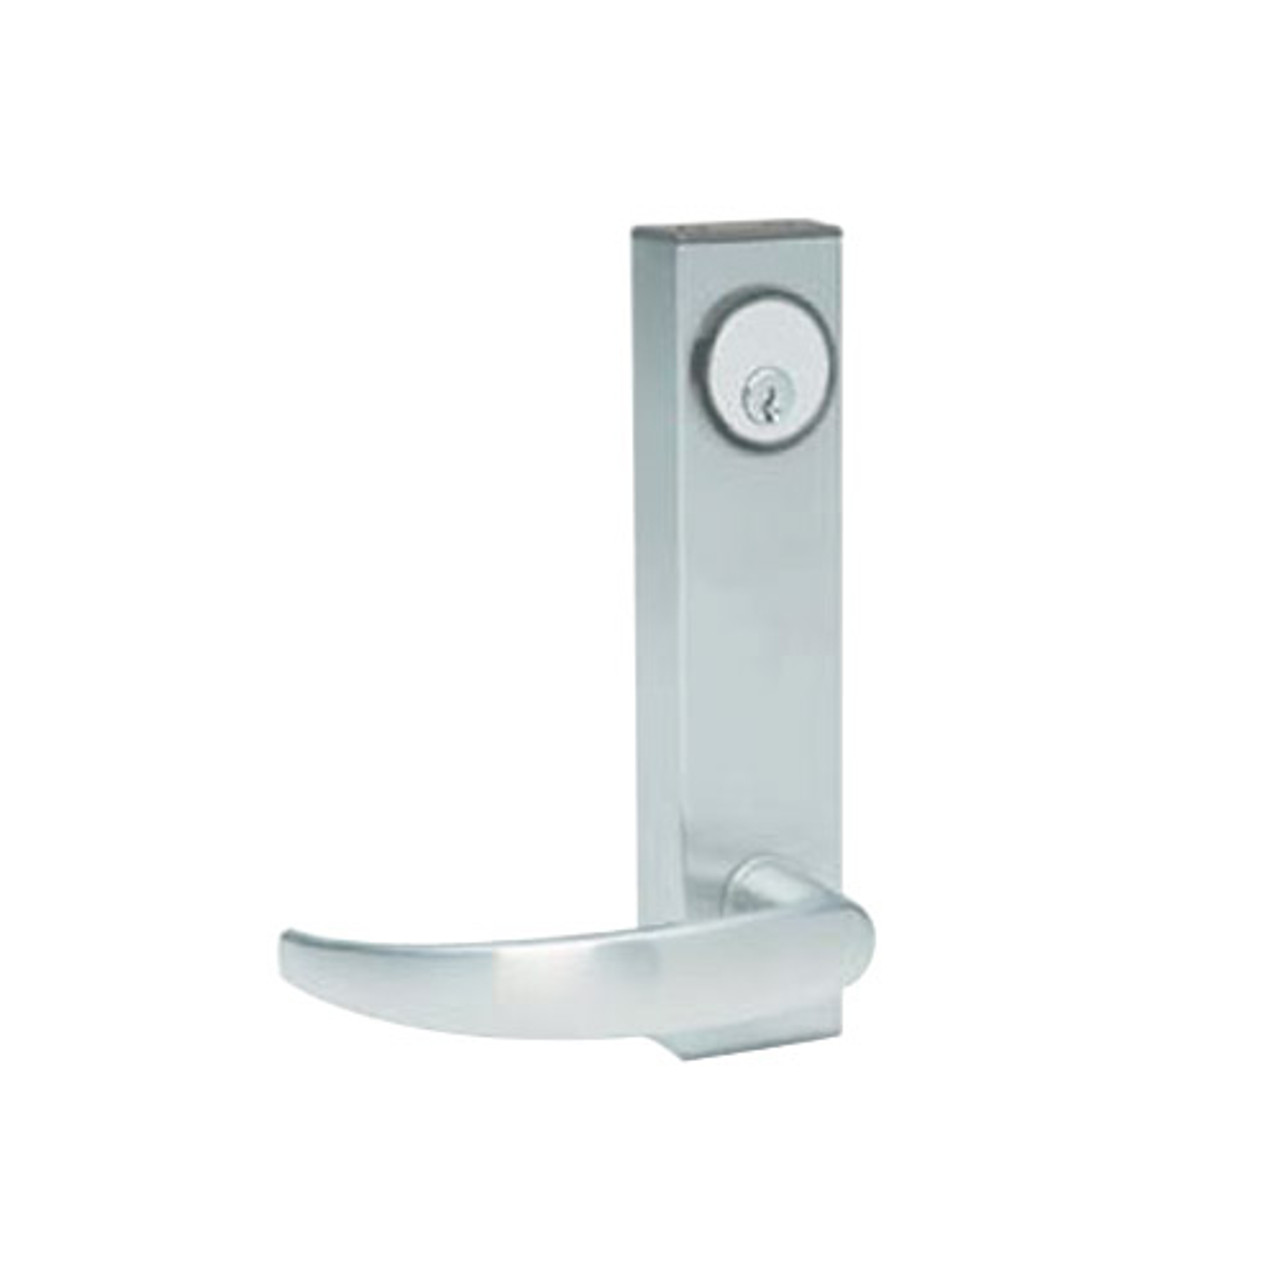 3080E-01-0-37-35 US32 Adams Rite Electrified Entry Trim with Curve Lever in Bright Stainless Finish